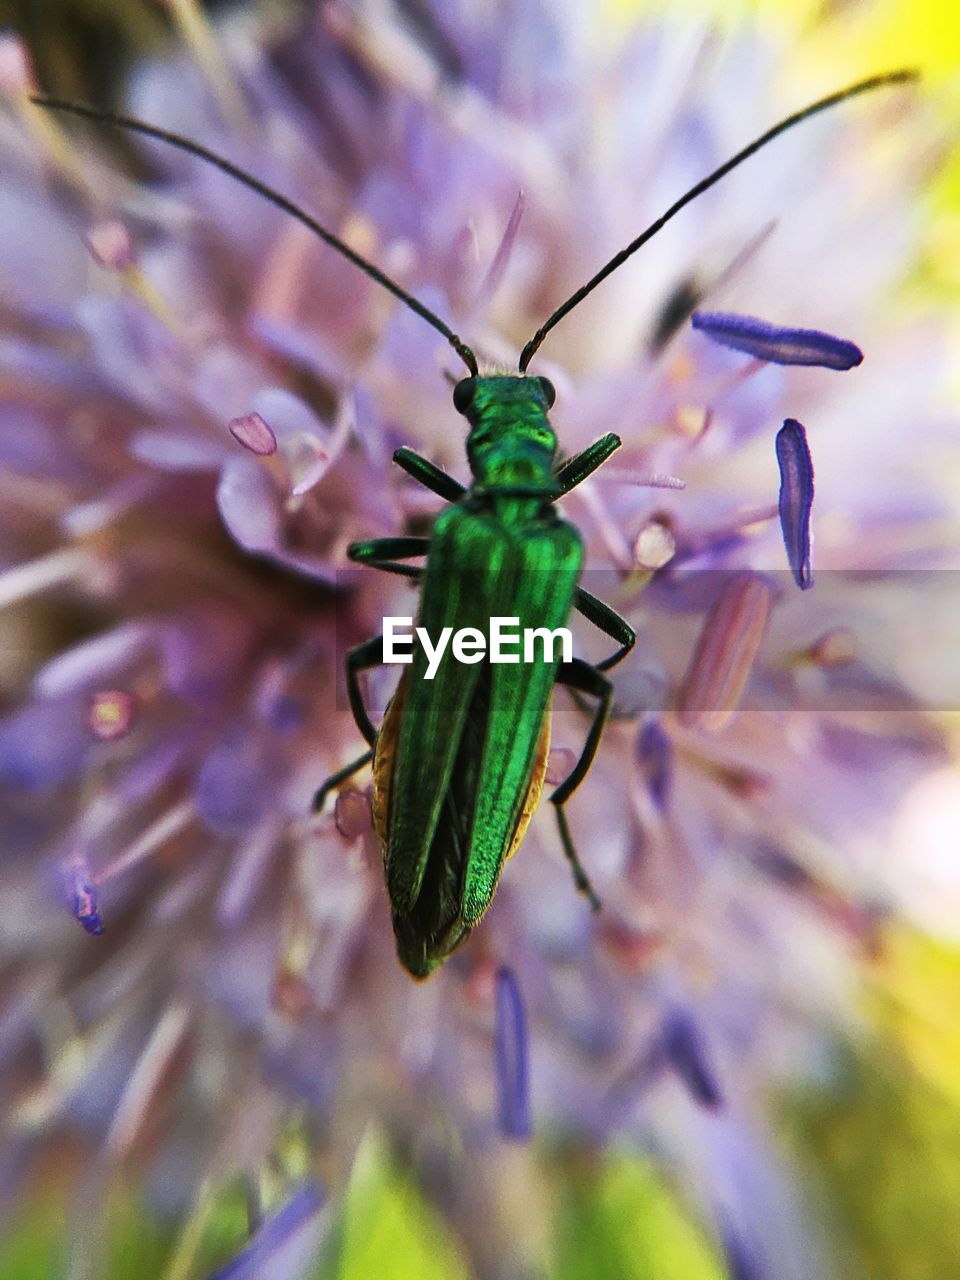 insect, one animal, animal themes, no people, animals in the wild, nature, green color, close-up, day, outdoors, flower, beauty in nature